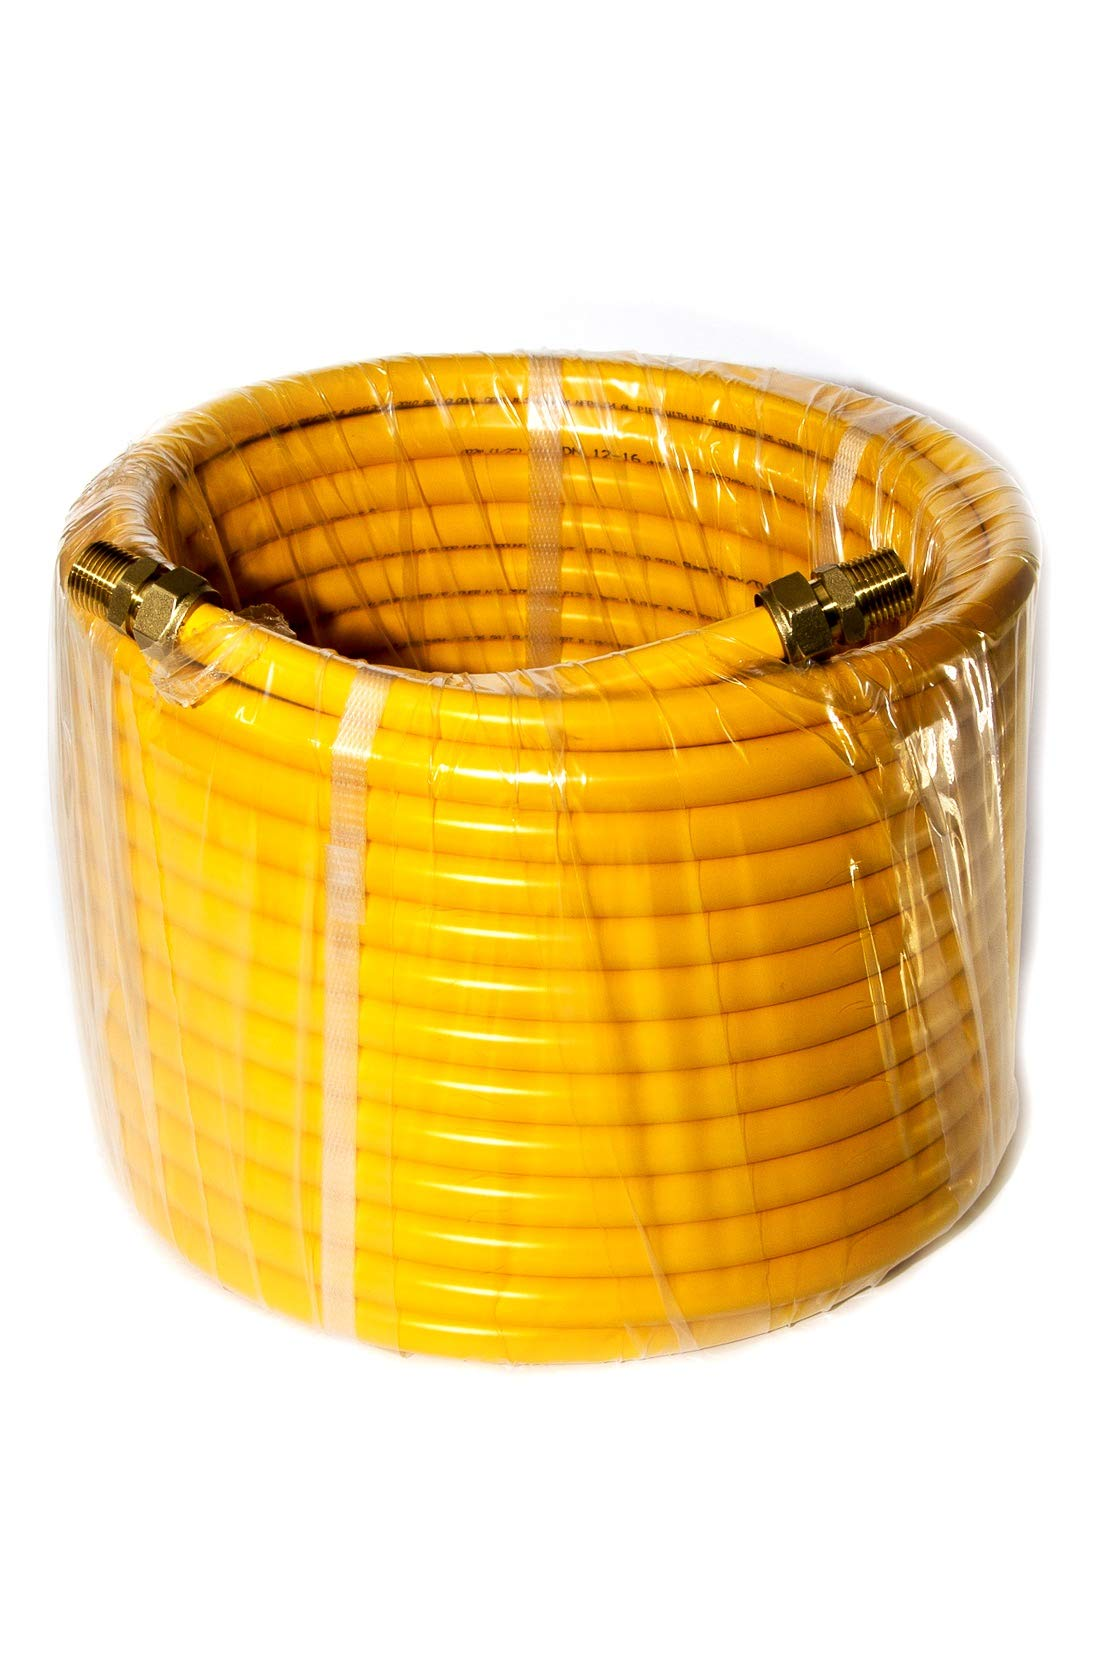 GASFLEX Gas Flex 1/2'' Tubing Pipe KIT 66ft with 2 Fittings by GASFLEX